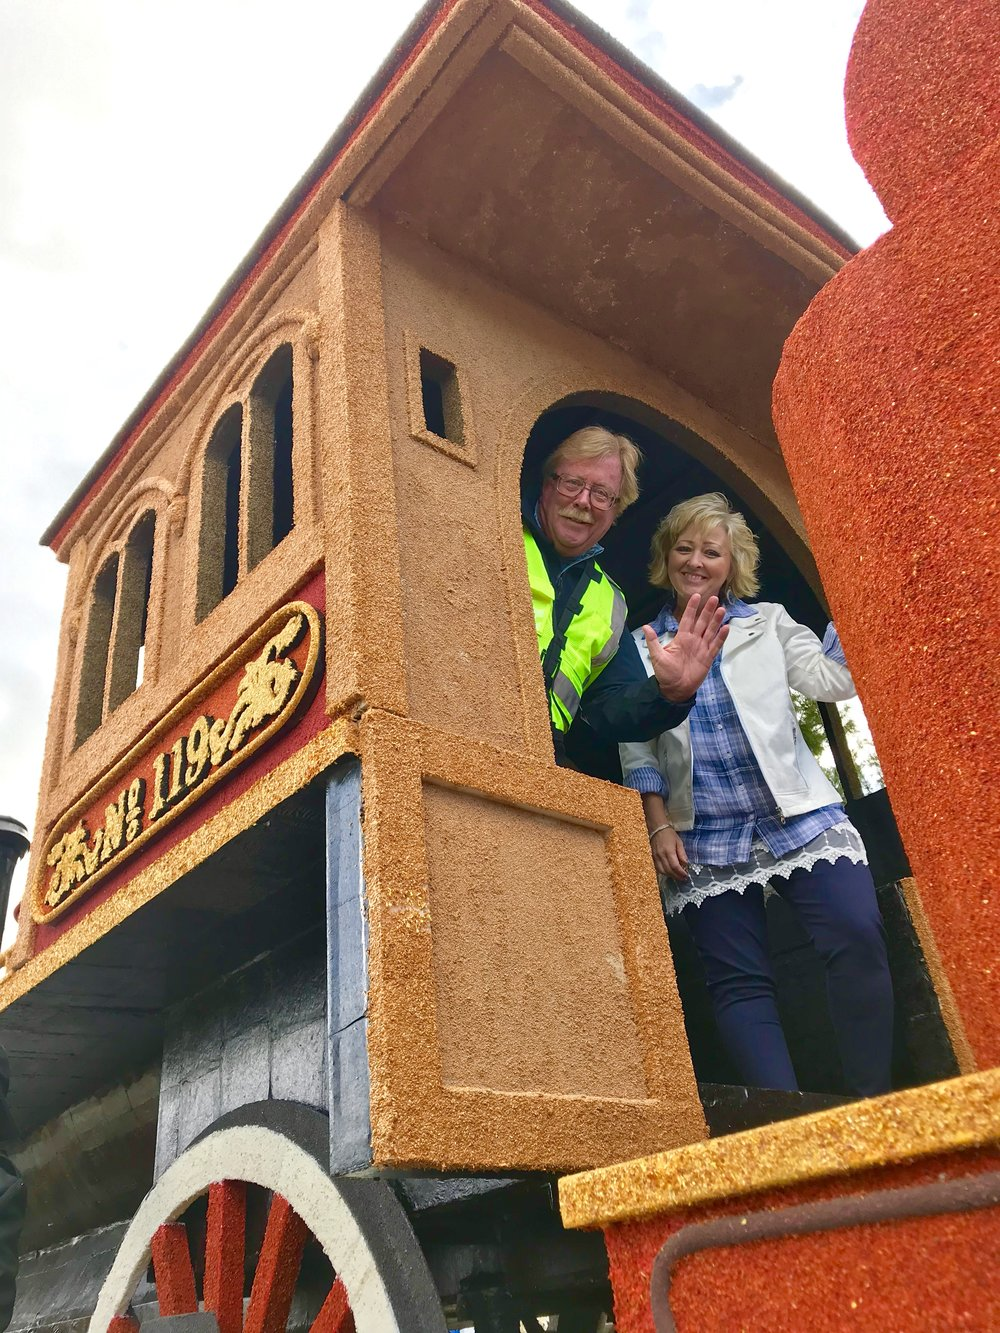 James Guerin, right where he should be — in the locomotive of UP No. 119. James is a real locomotive engineer for Union Pacific Railroad.